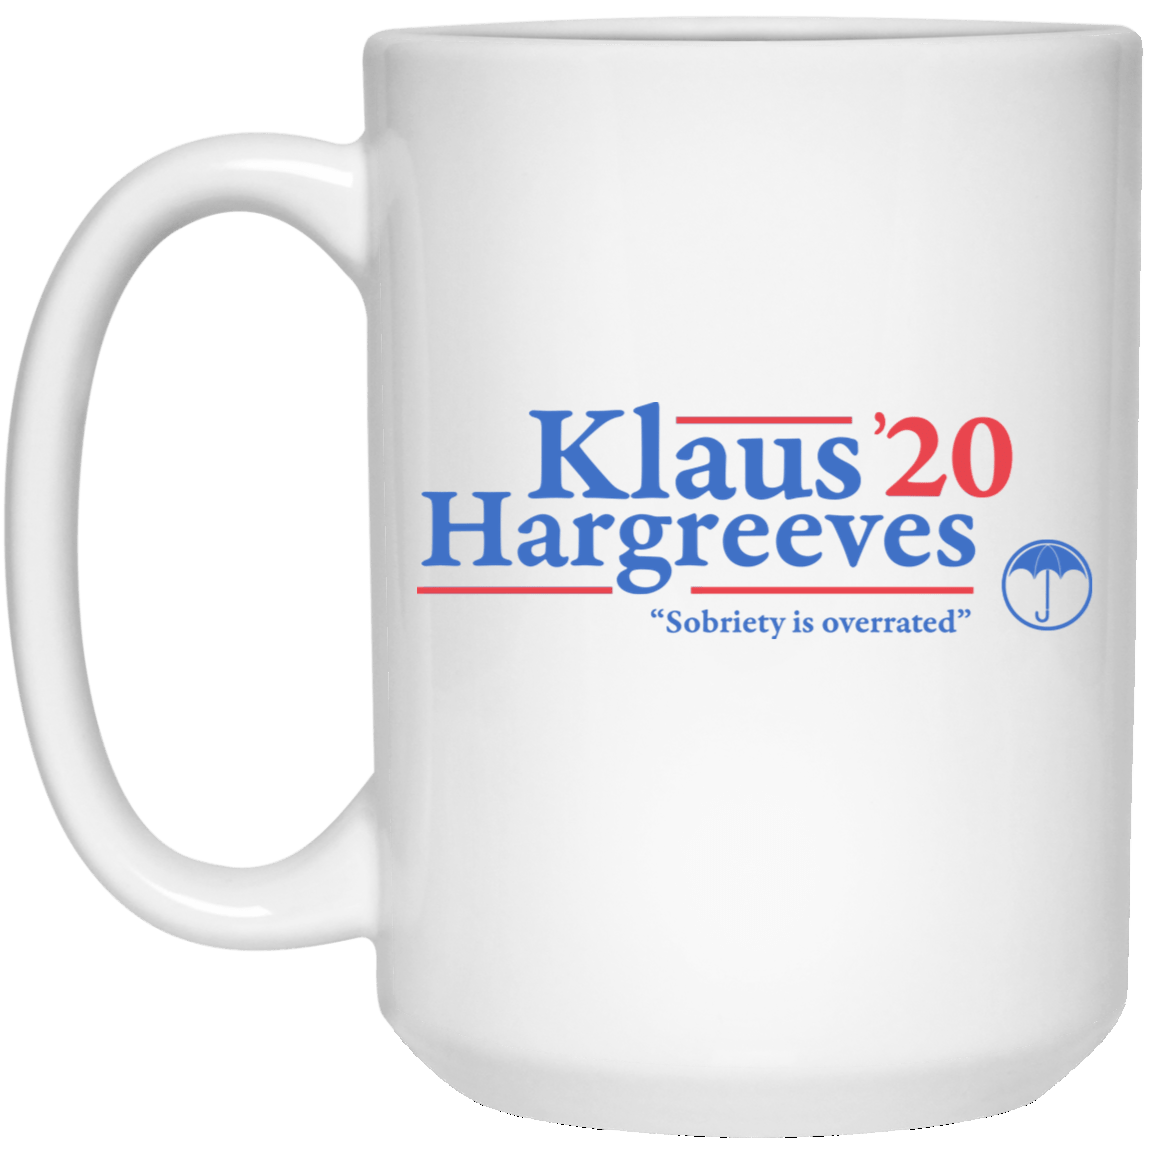 Klaus Hargreeves 2020 Sobriety Is Overrated Mug 1032-9816-88282902-47456 - Tee Ript